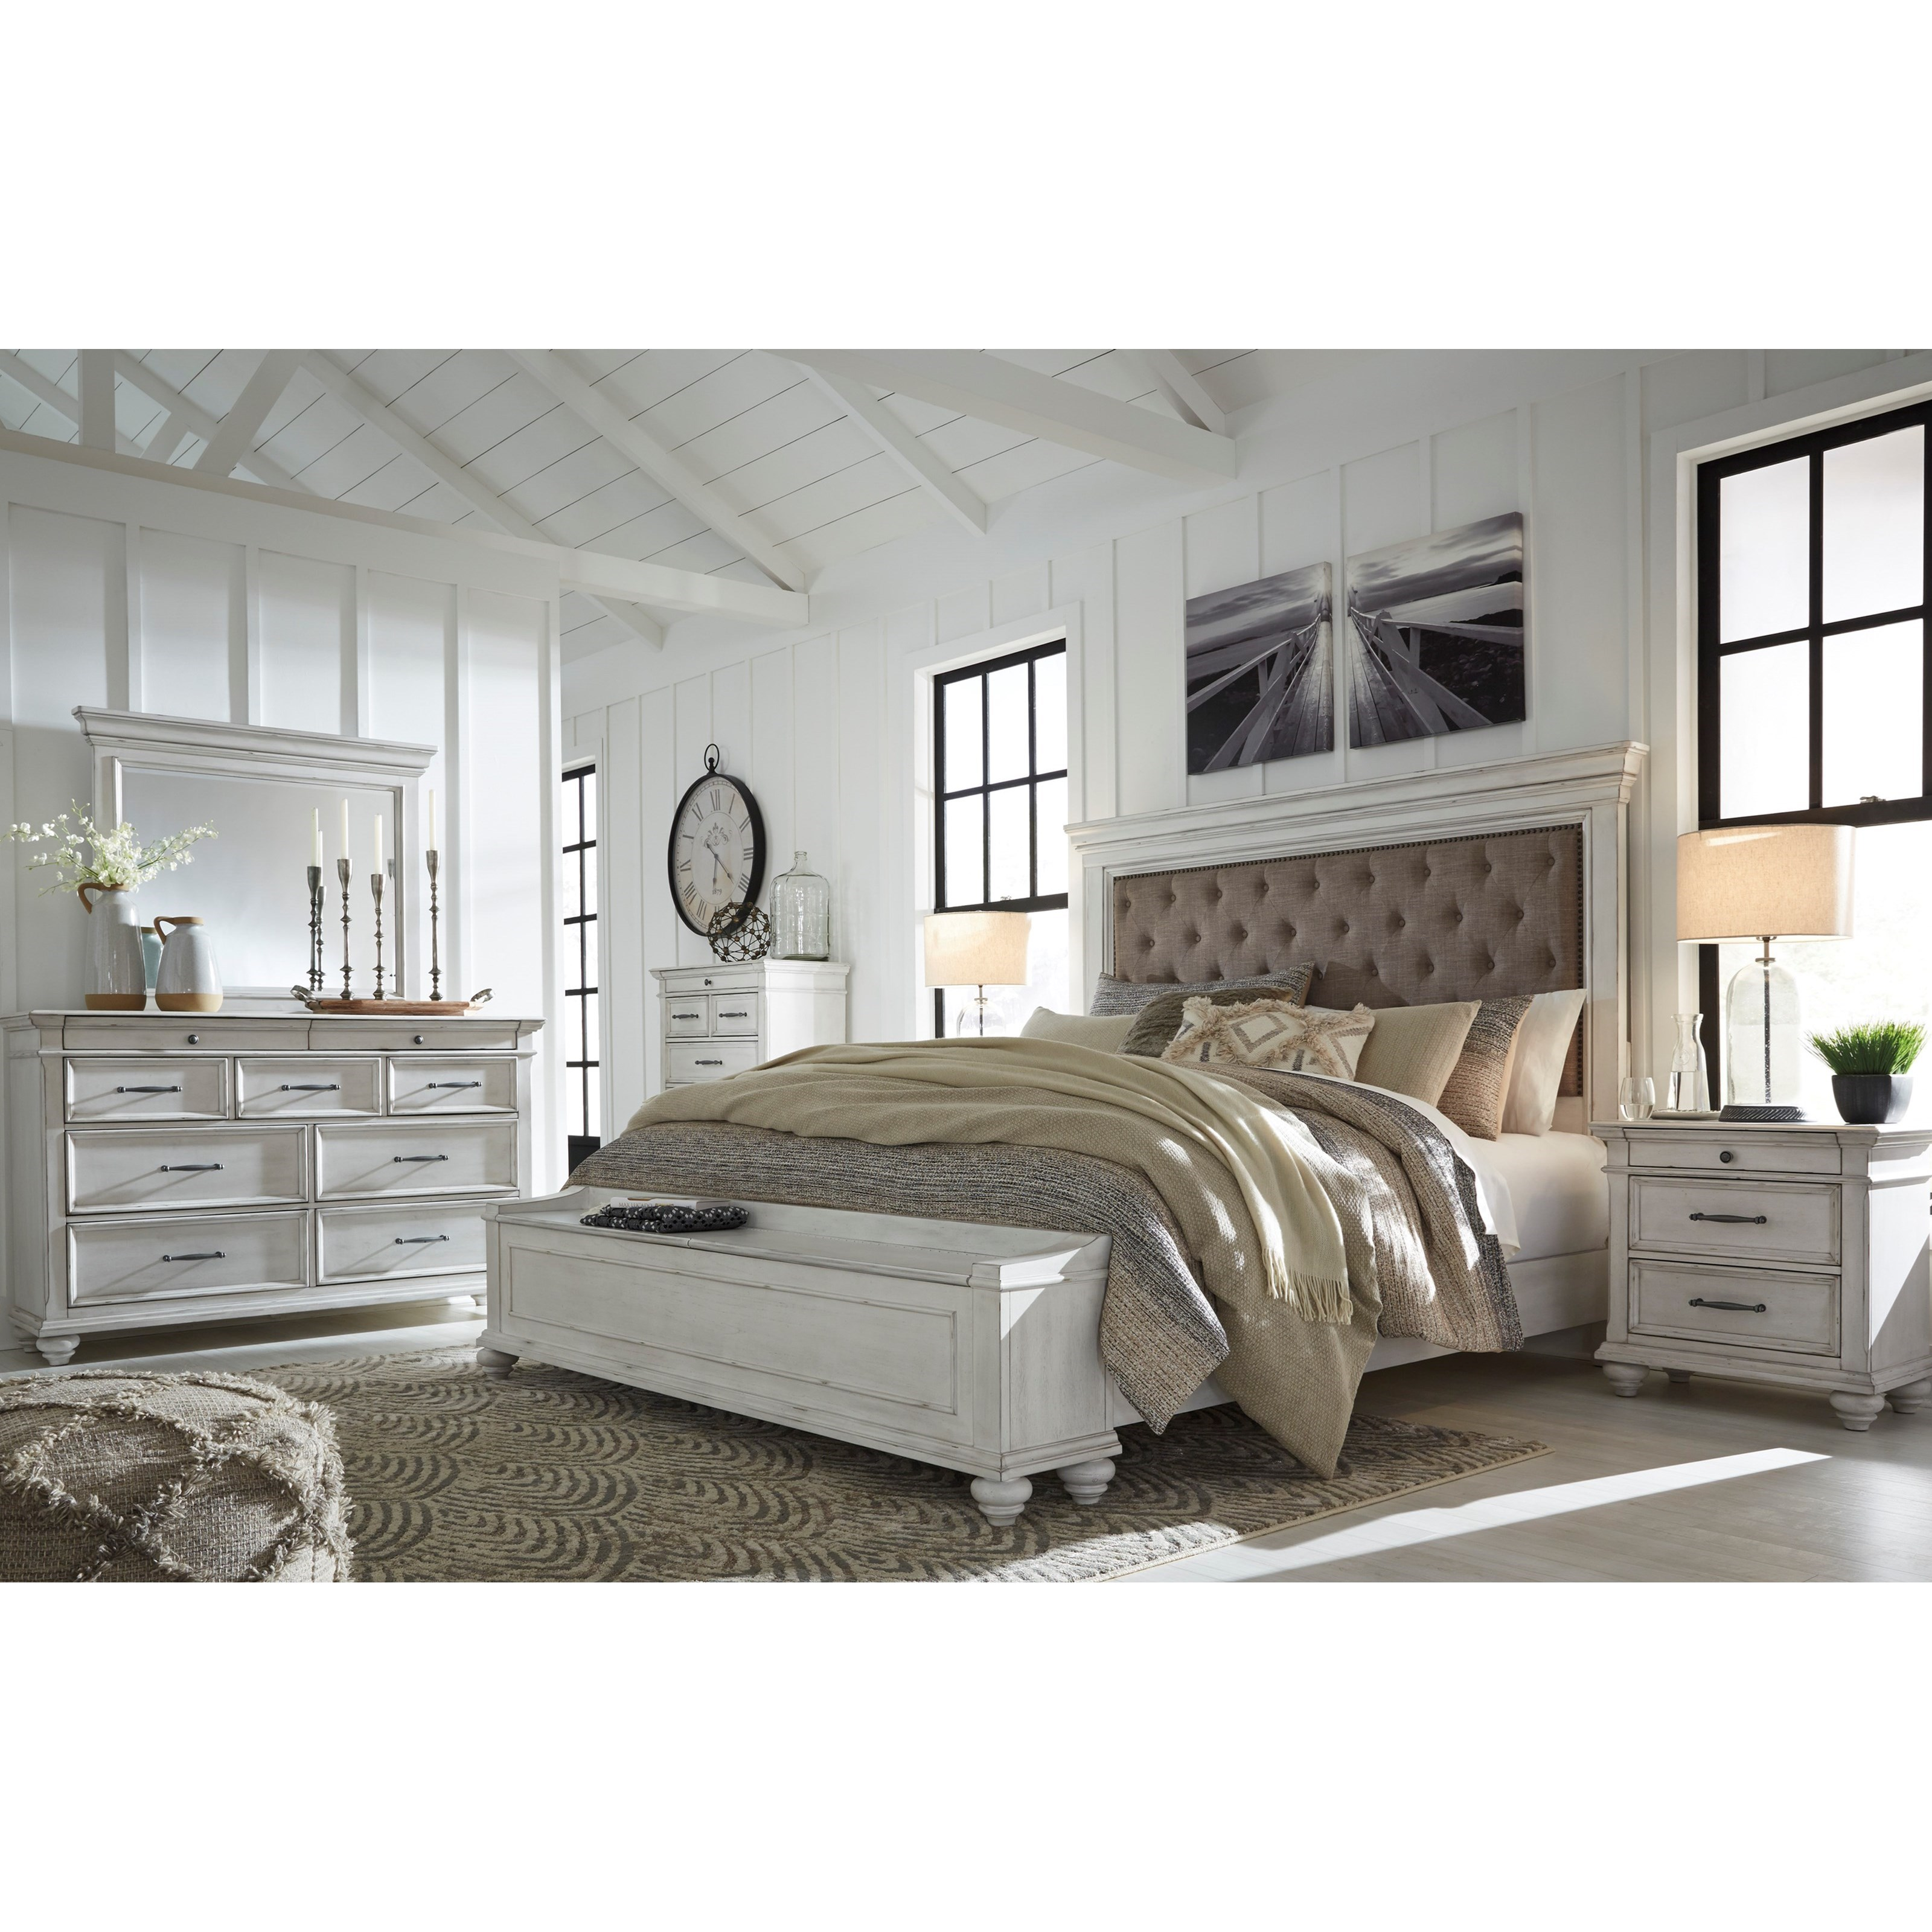 Kanwyn King Bedroom Group by Benchcraft at Furniture Barn